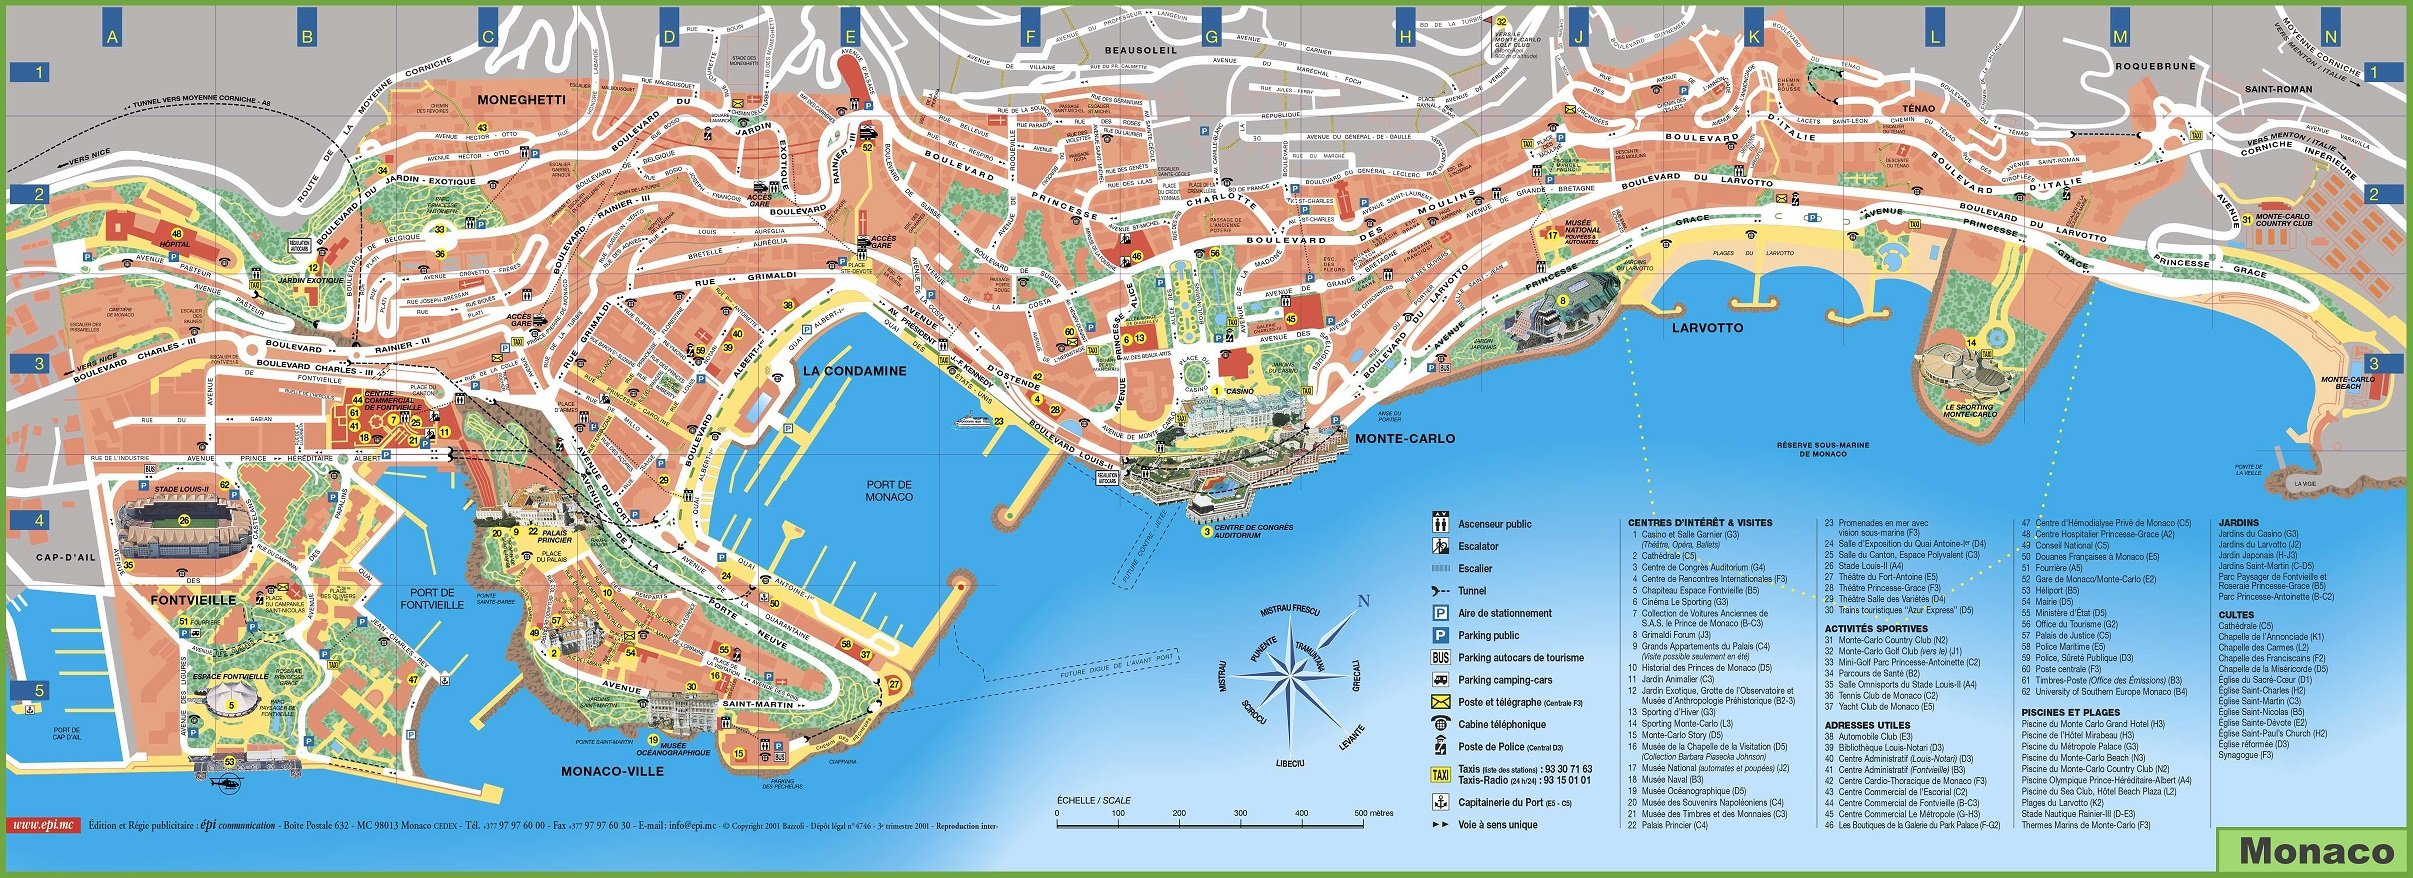 monaco_large-detailed-map-of_but.jpg